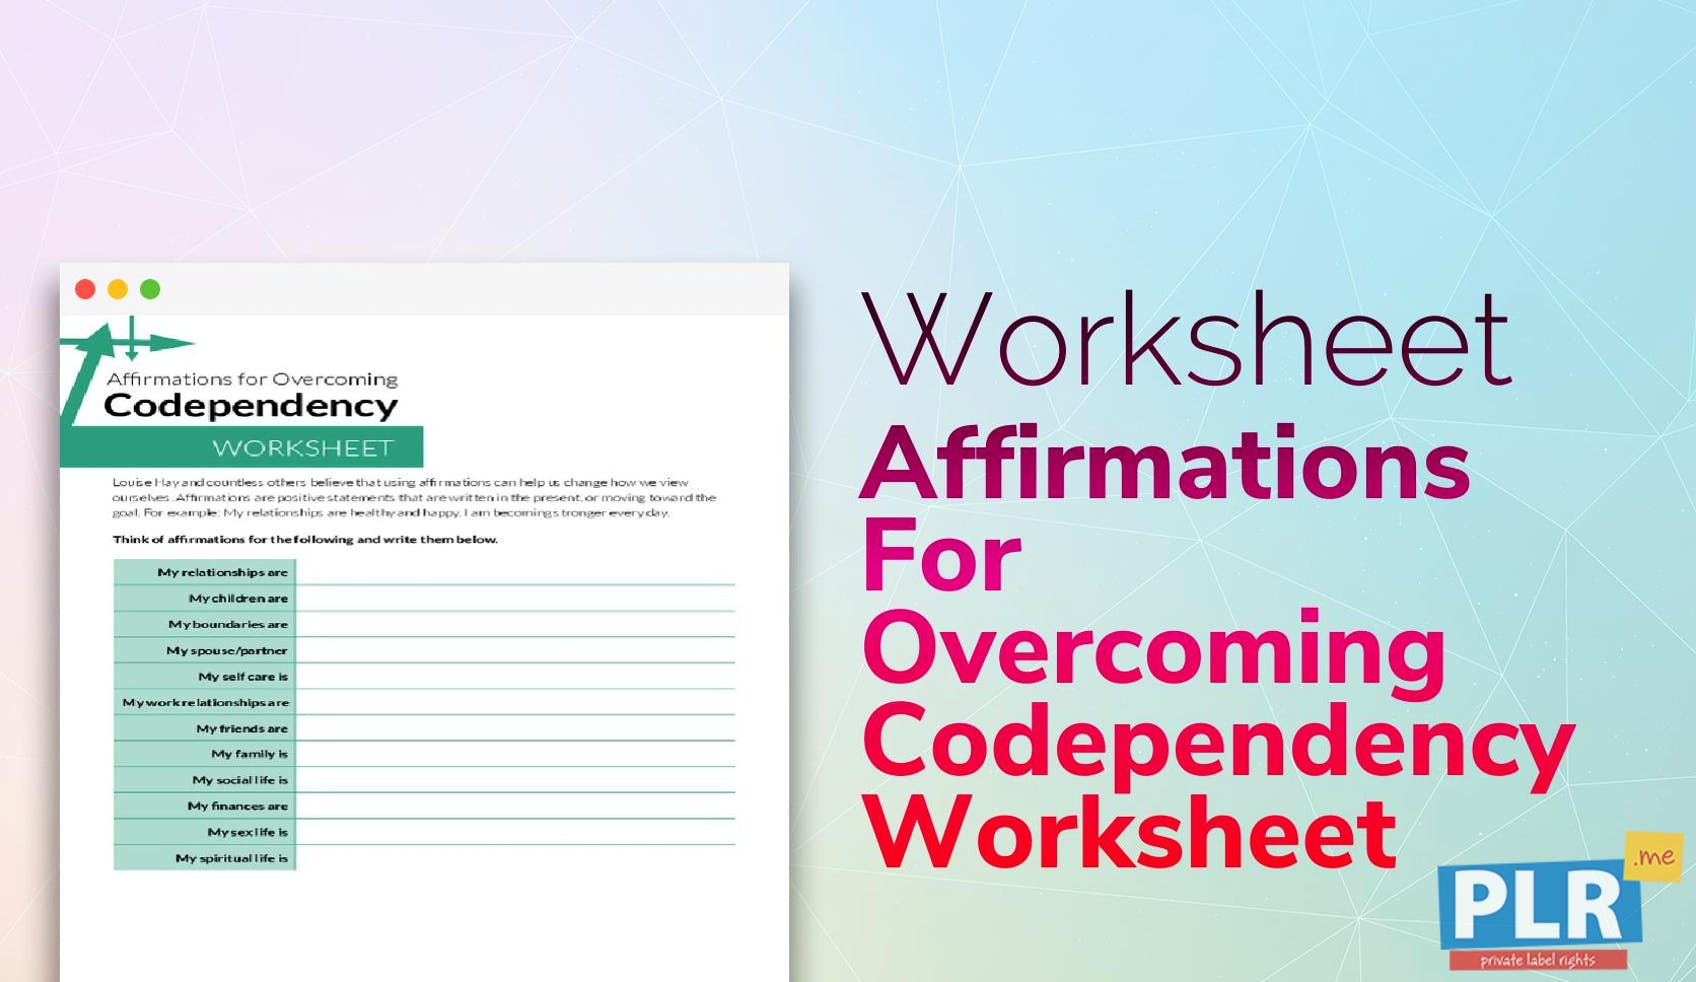 Affirmations For Overcoming Codependency Worksheet